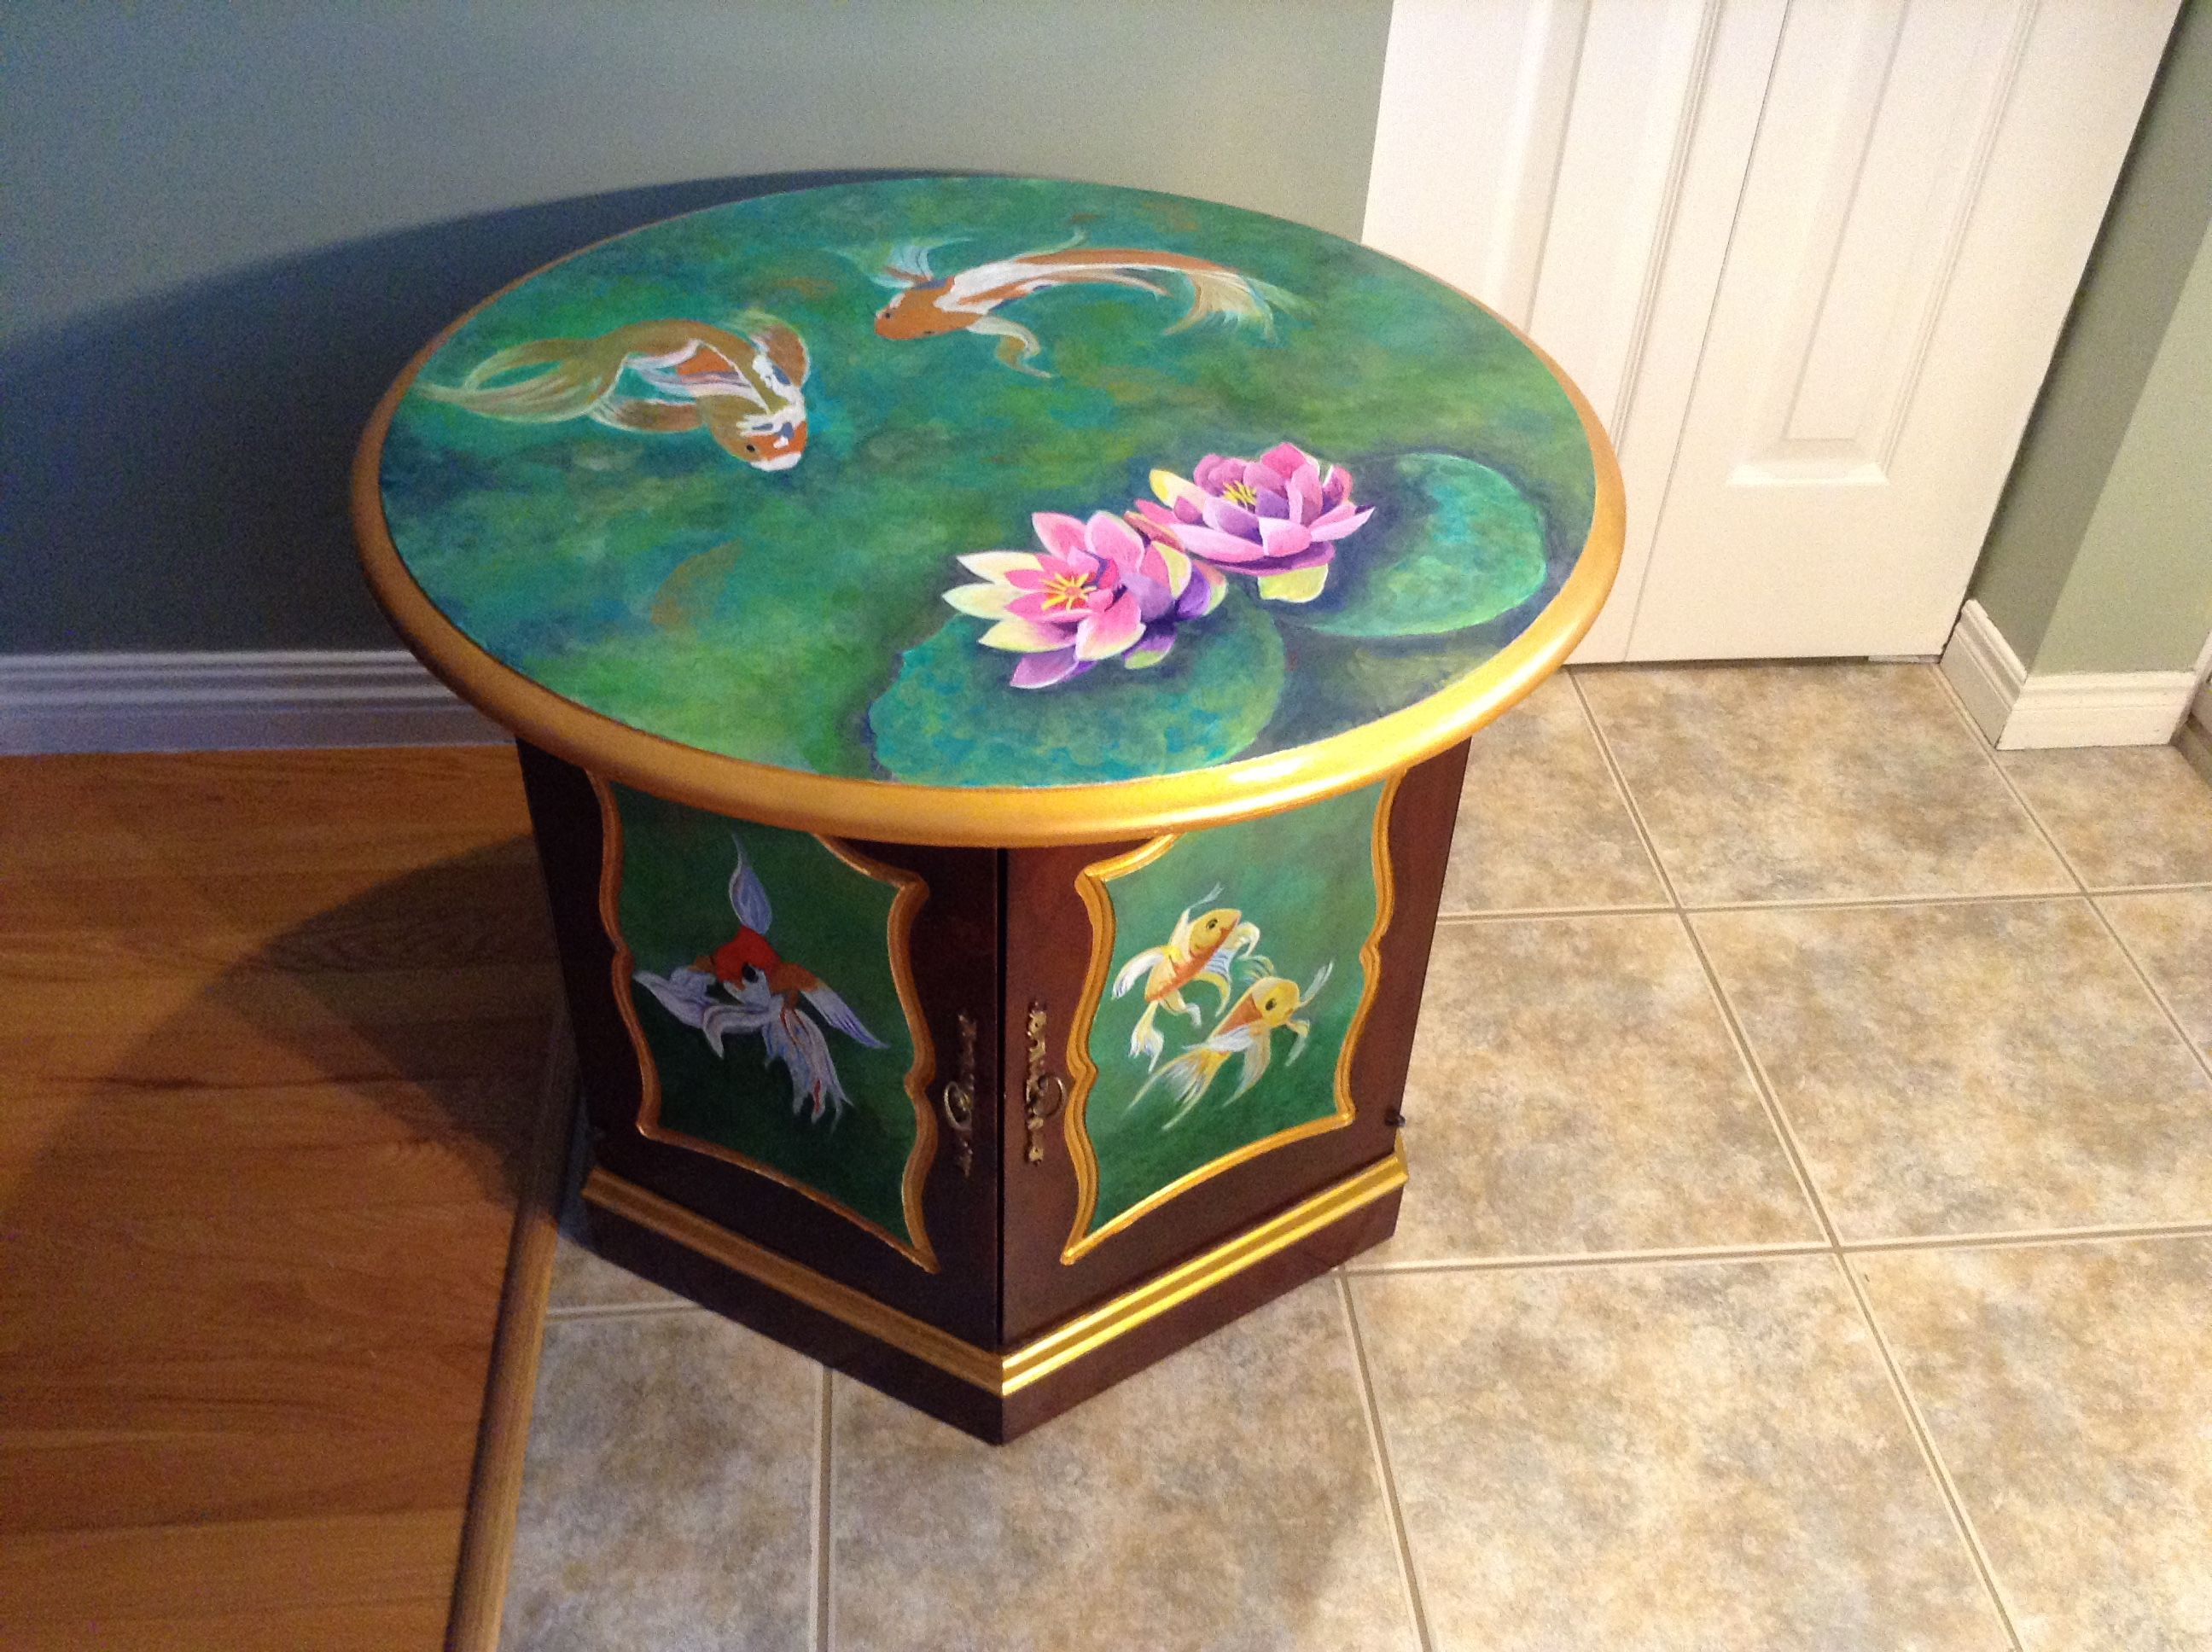 Acrylic Painting On Wooden Hexagon Drum Table By Adrienne Elfner